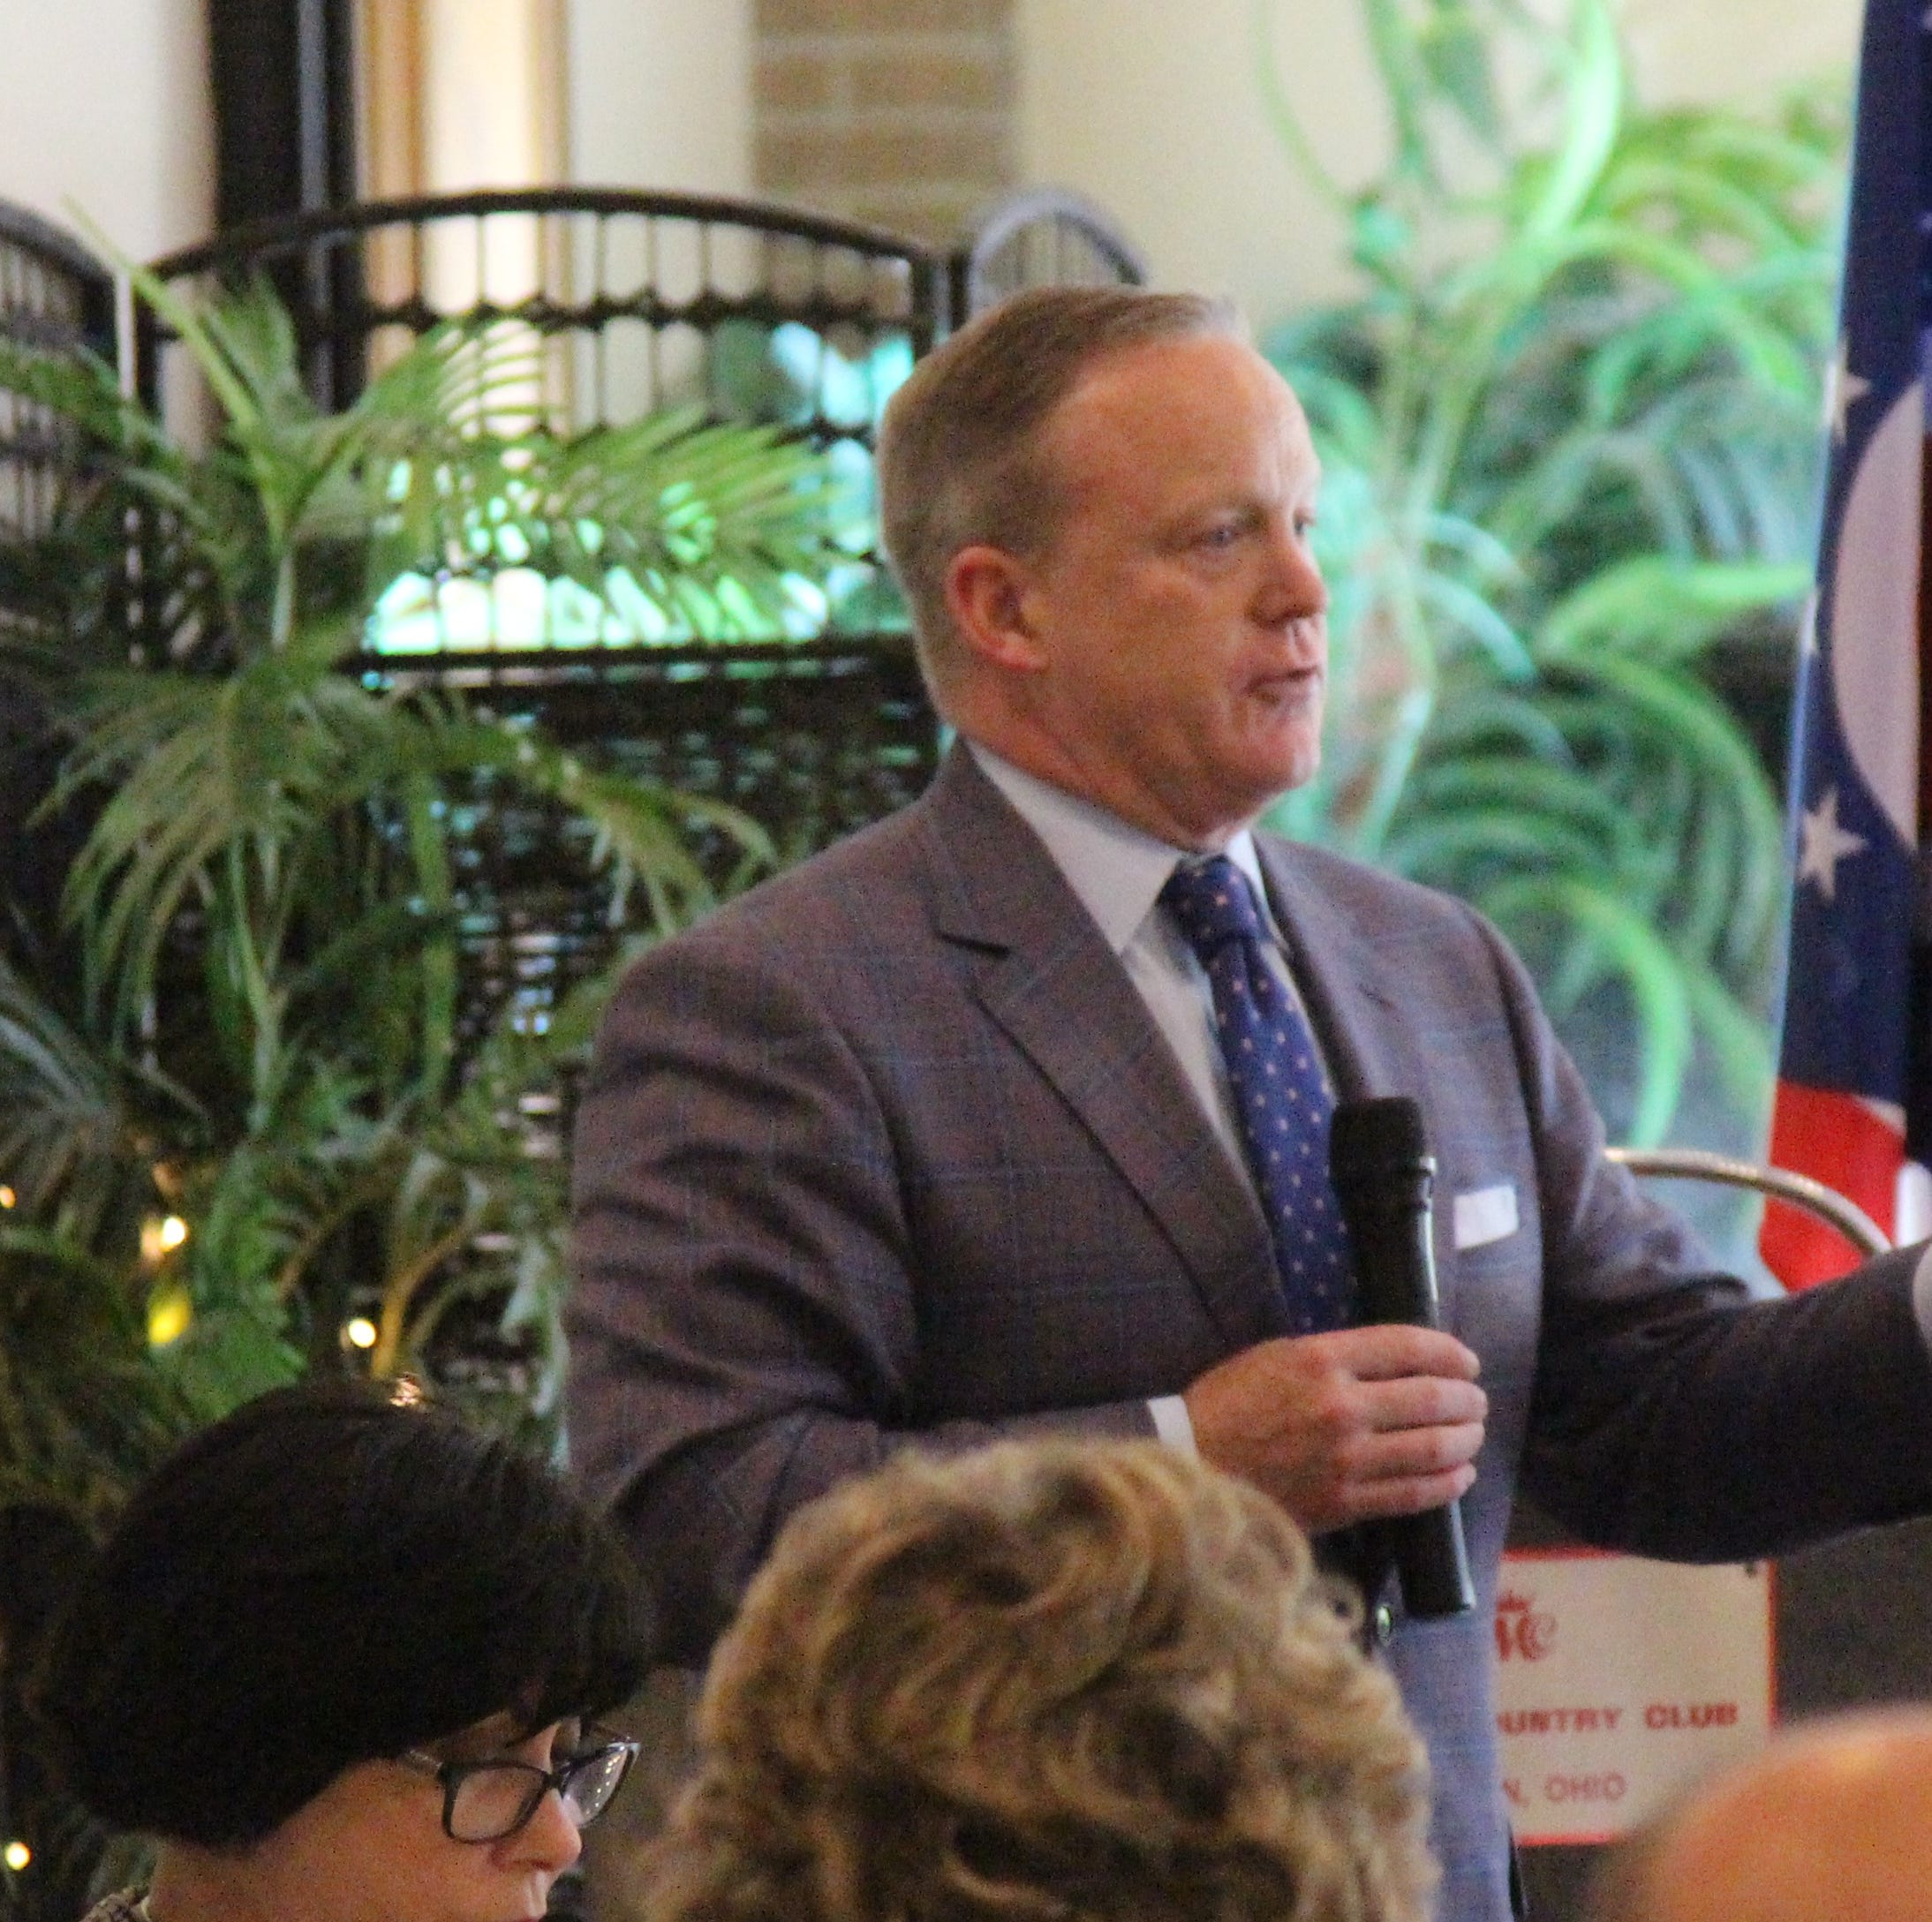 Spicer comes to Marion, talks Trump re-election